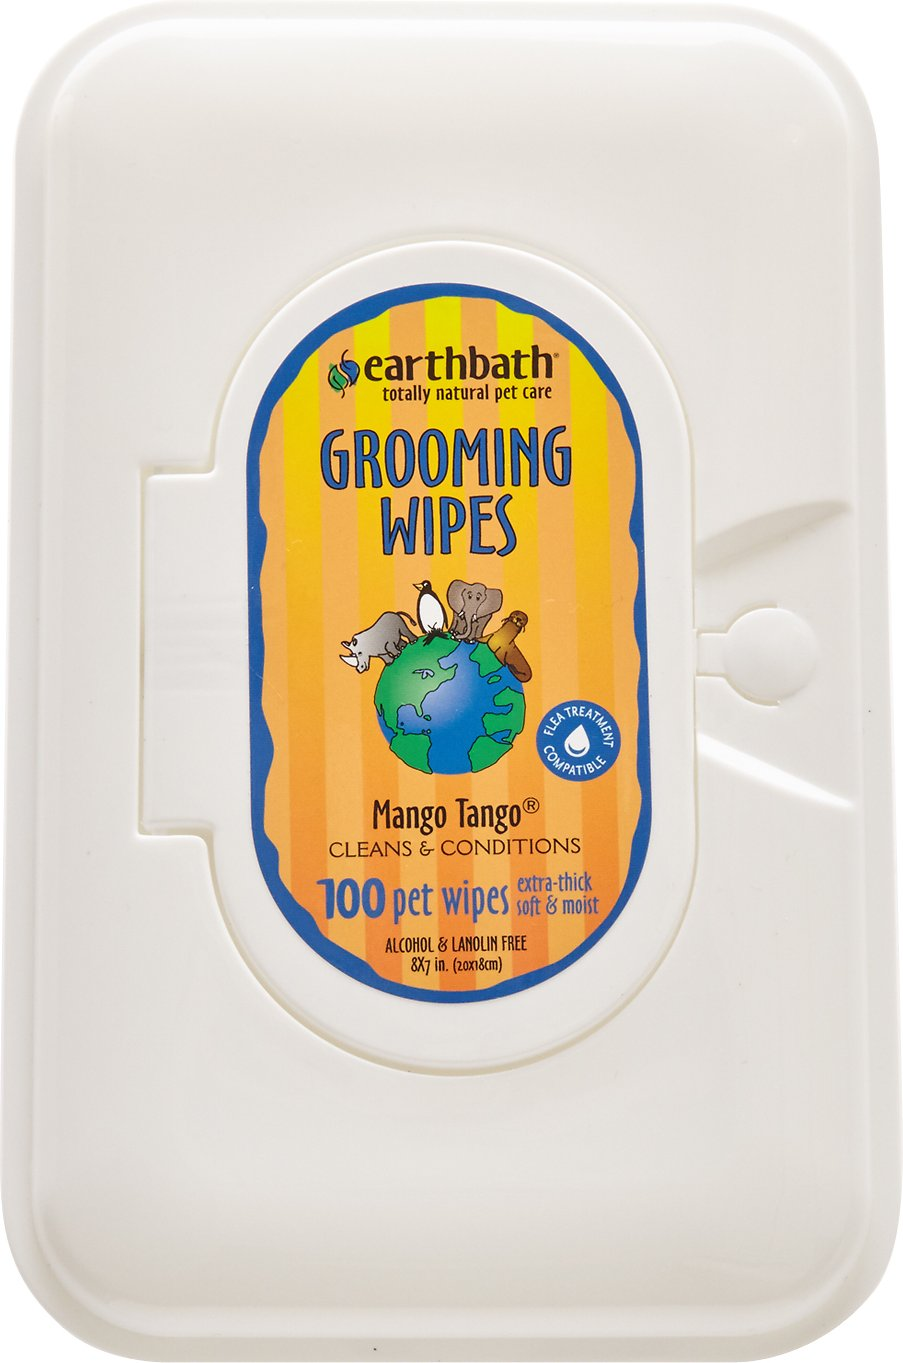 Earthbath Grooming Wipes for Dogs & Cats, Mango Tango, 100-count